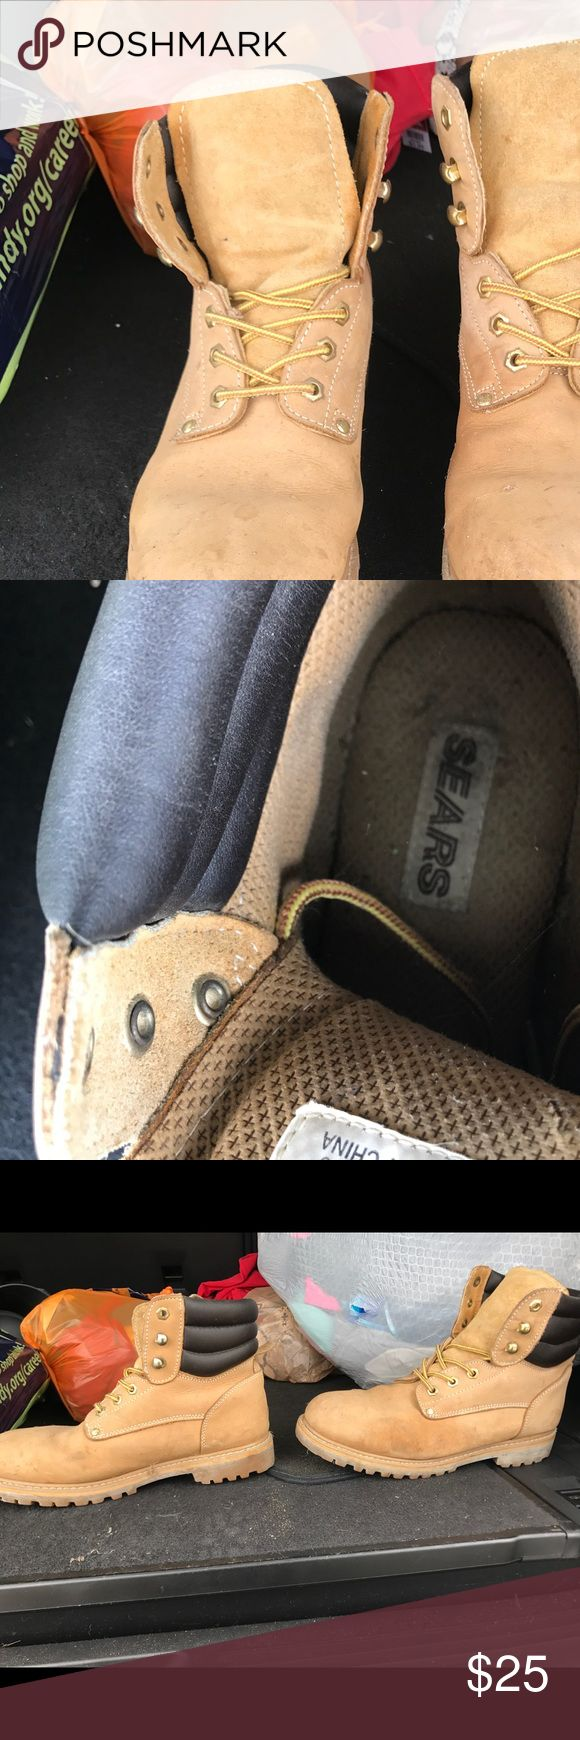 Sears men oil proof work boots size 11 slightly worn men's work boots oil proof work boots size 11 from sears sears Shoes Boots